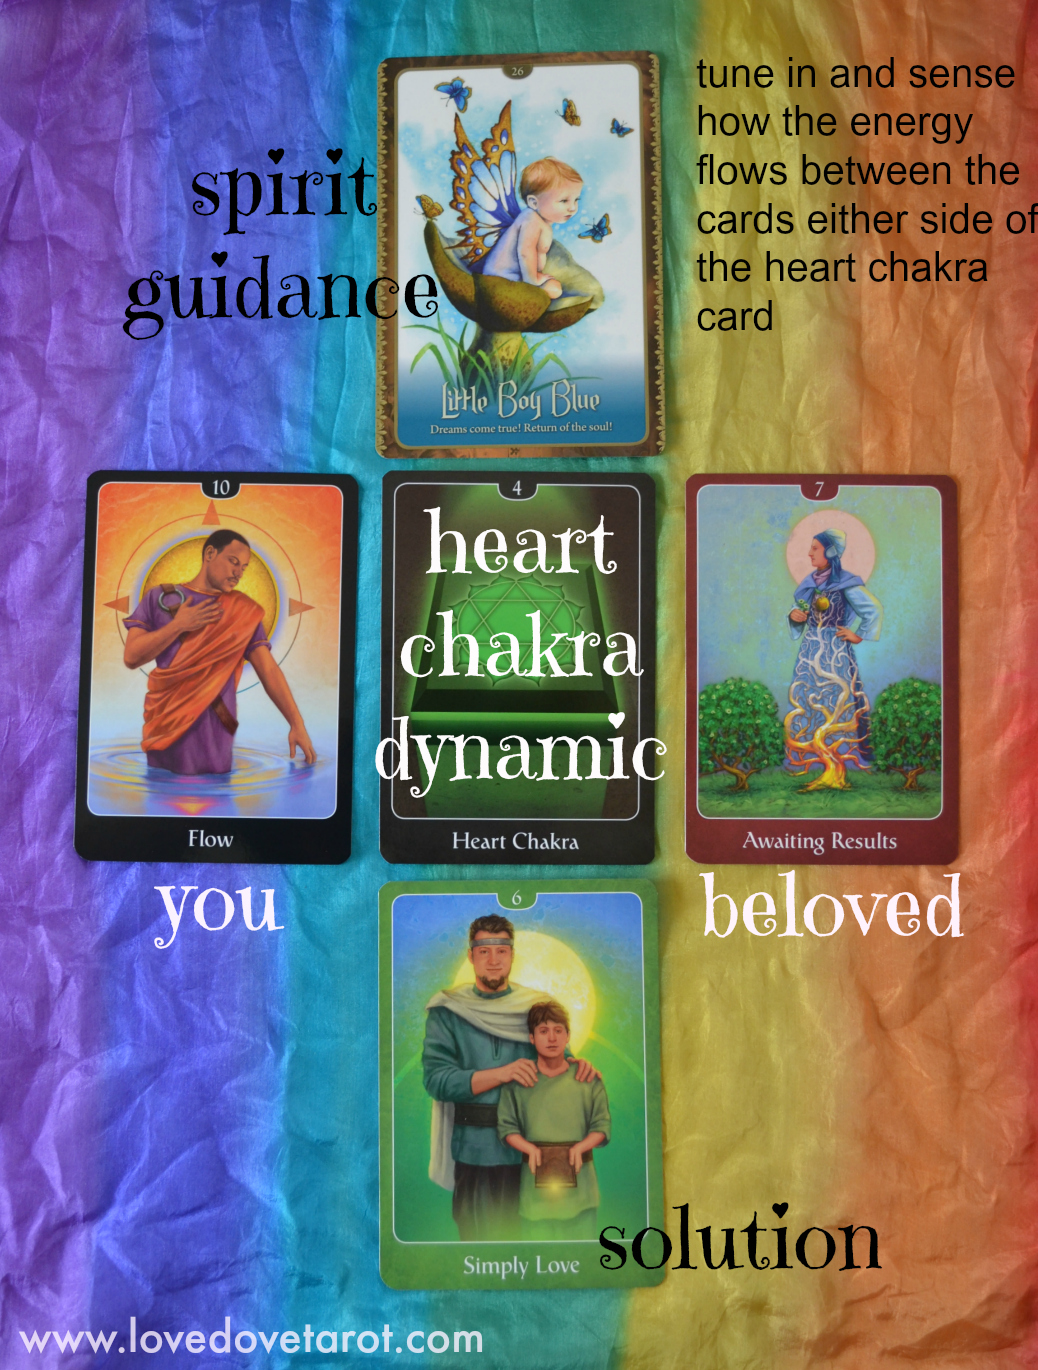 Psychic Tarot Cards Meanings: Heart Chakra Relationship Reading With The Psychic Tarot